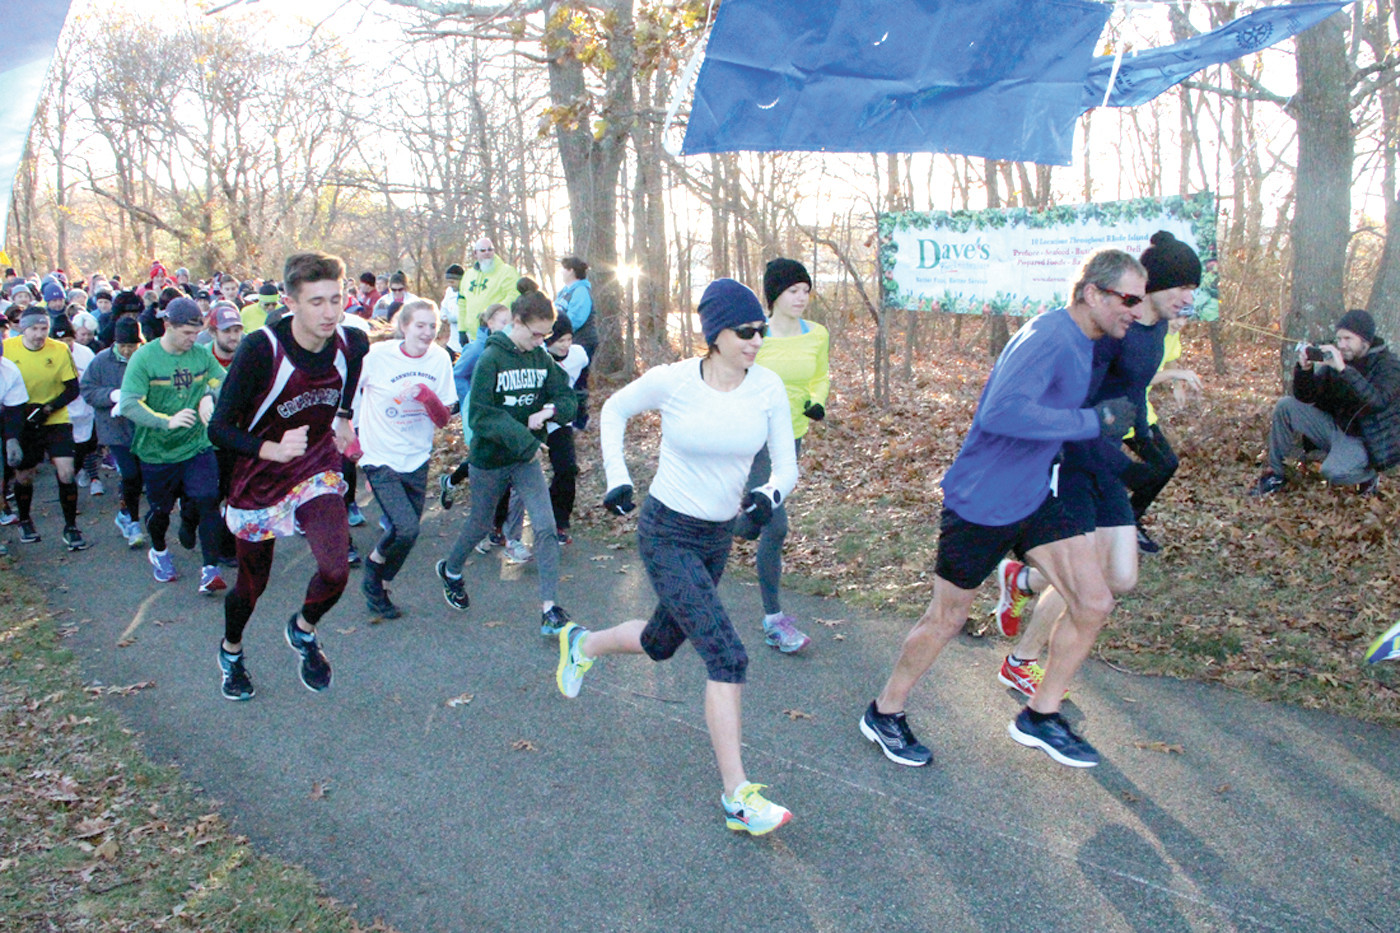 RUN BEFORE YOU EAT: Nearly 400 runners and walkers turned out early Thursday morning at Warwick City Park for the Warwick Rotary Club 5K Turkey Trot. Some came wearing dishes while others dressed as Pilgrims all for charity.